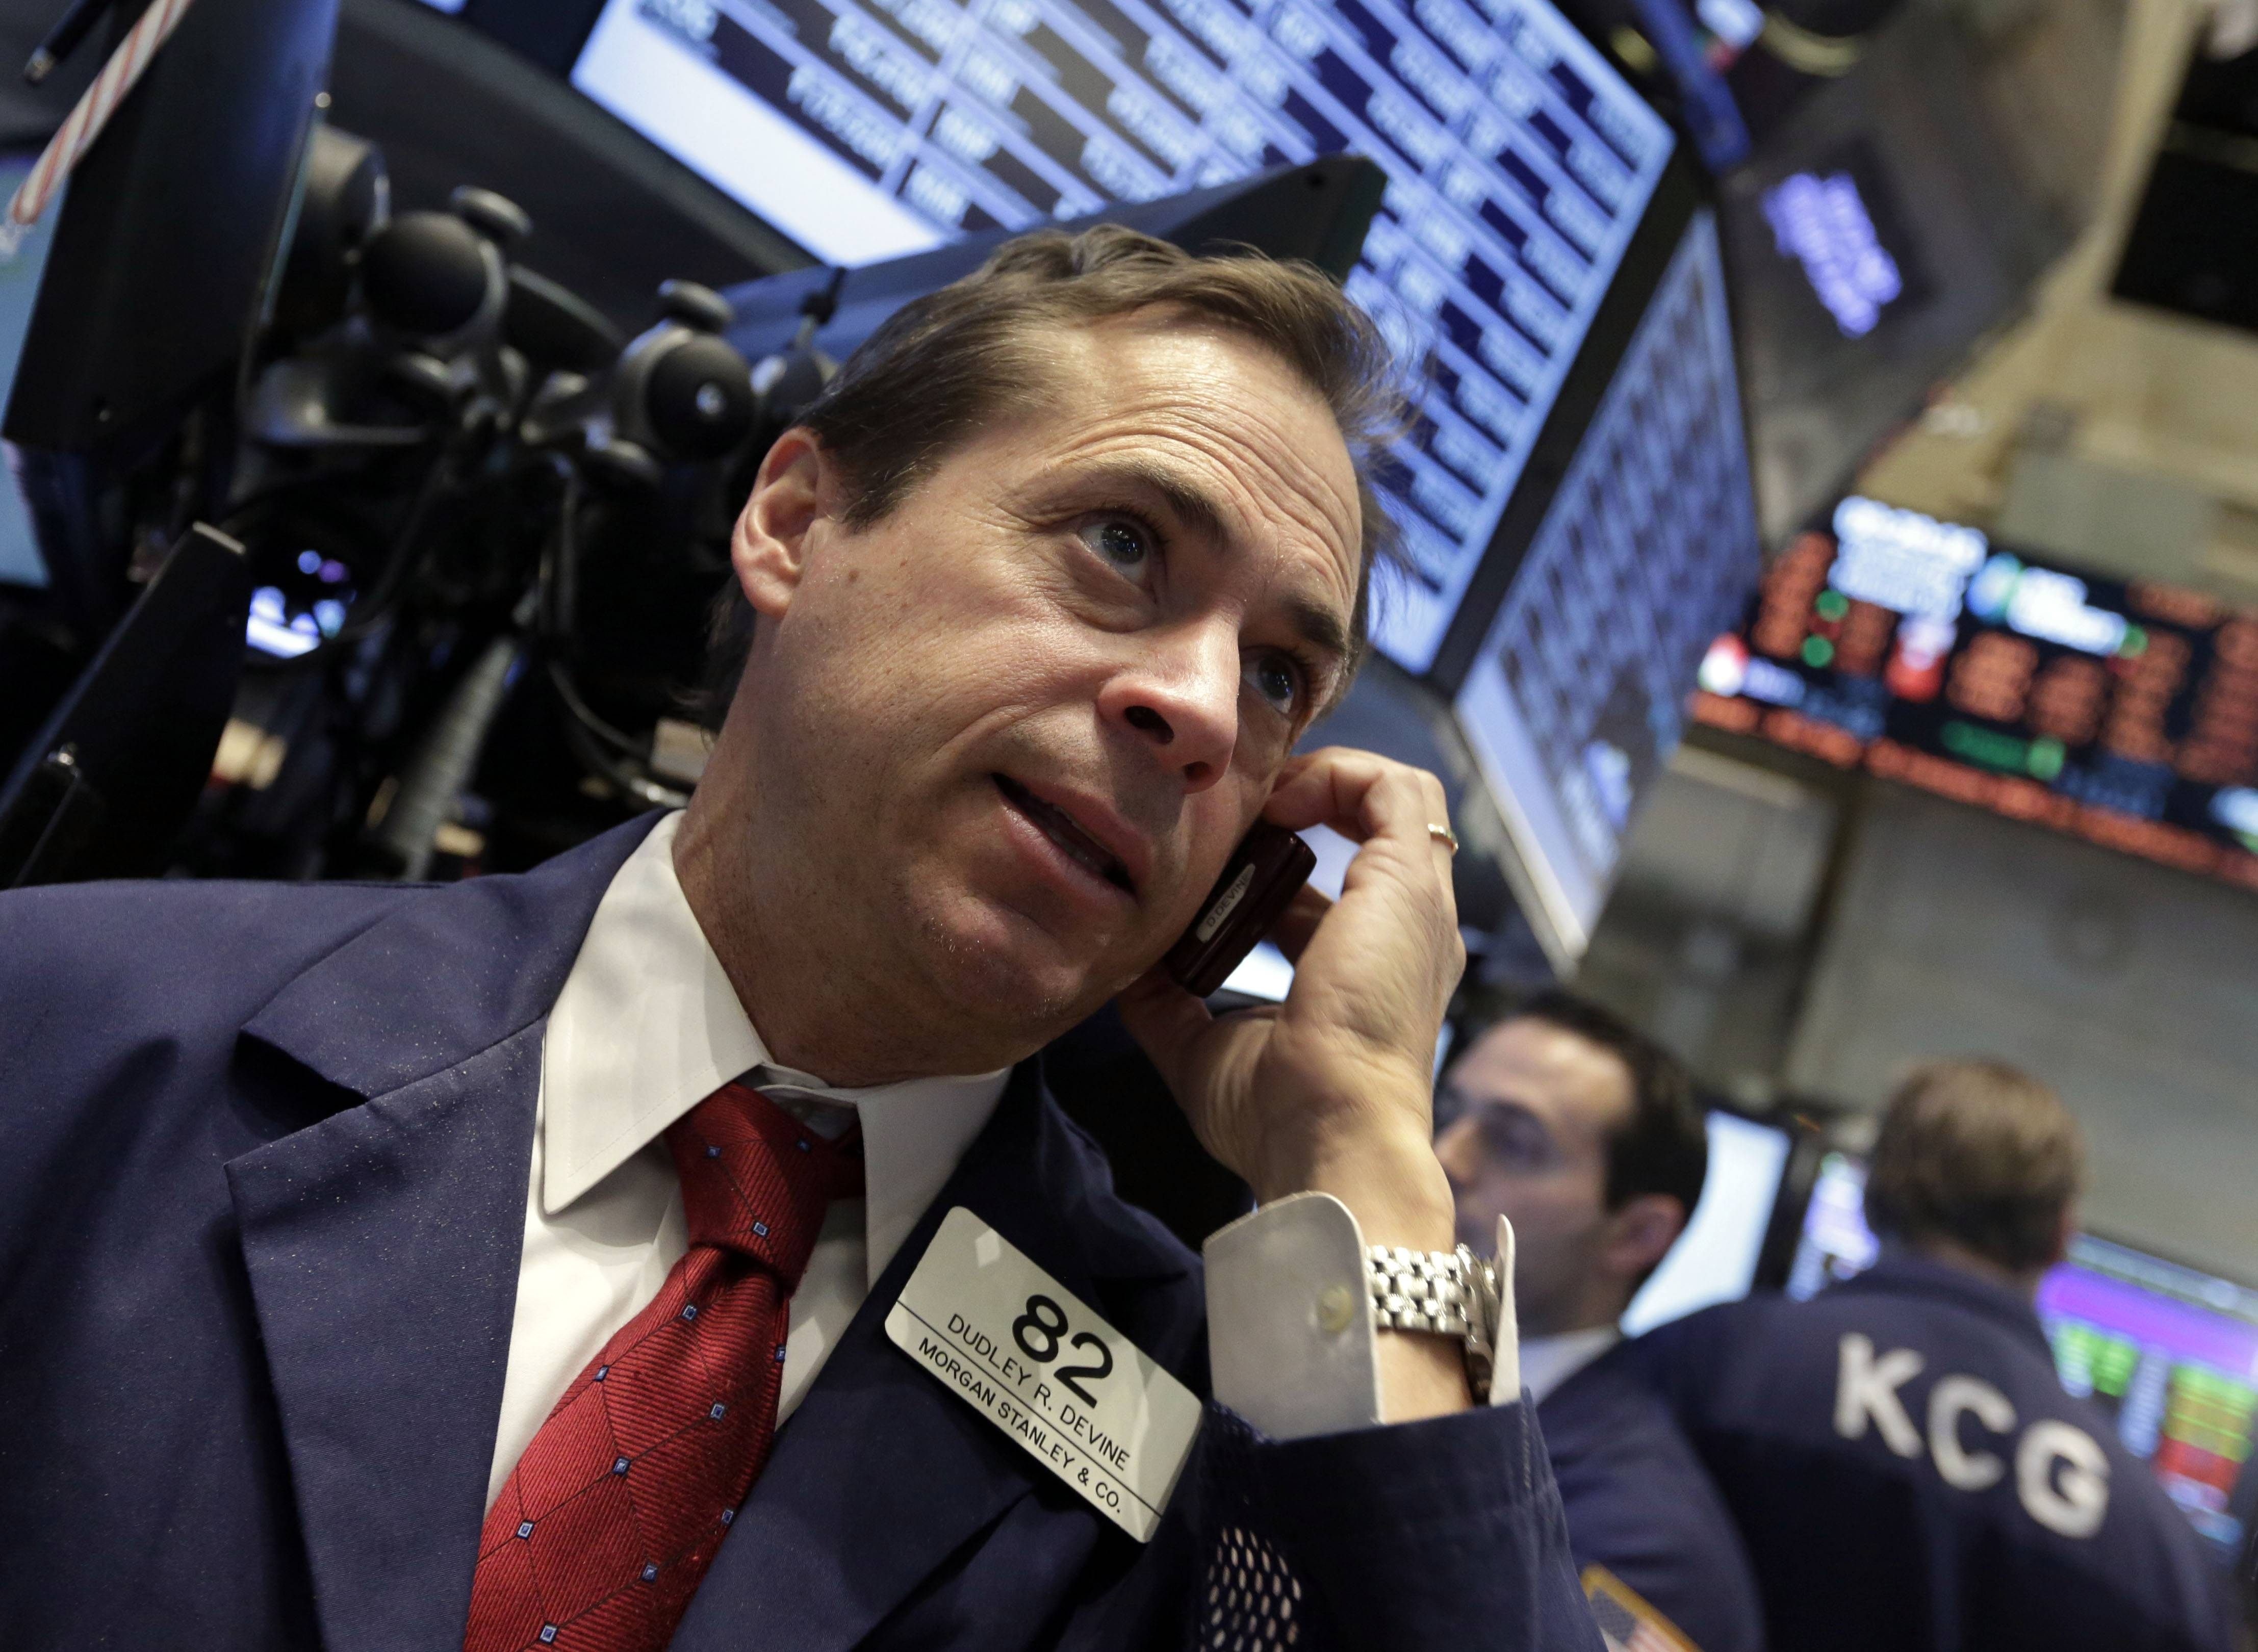 Stocks rose Thursday, erasing most of yesterday's drop, as improving manufacturing data tempered concern about the economy and Facebook's $19 billion purchase of a messaging startup fueled optimism about deals.